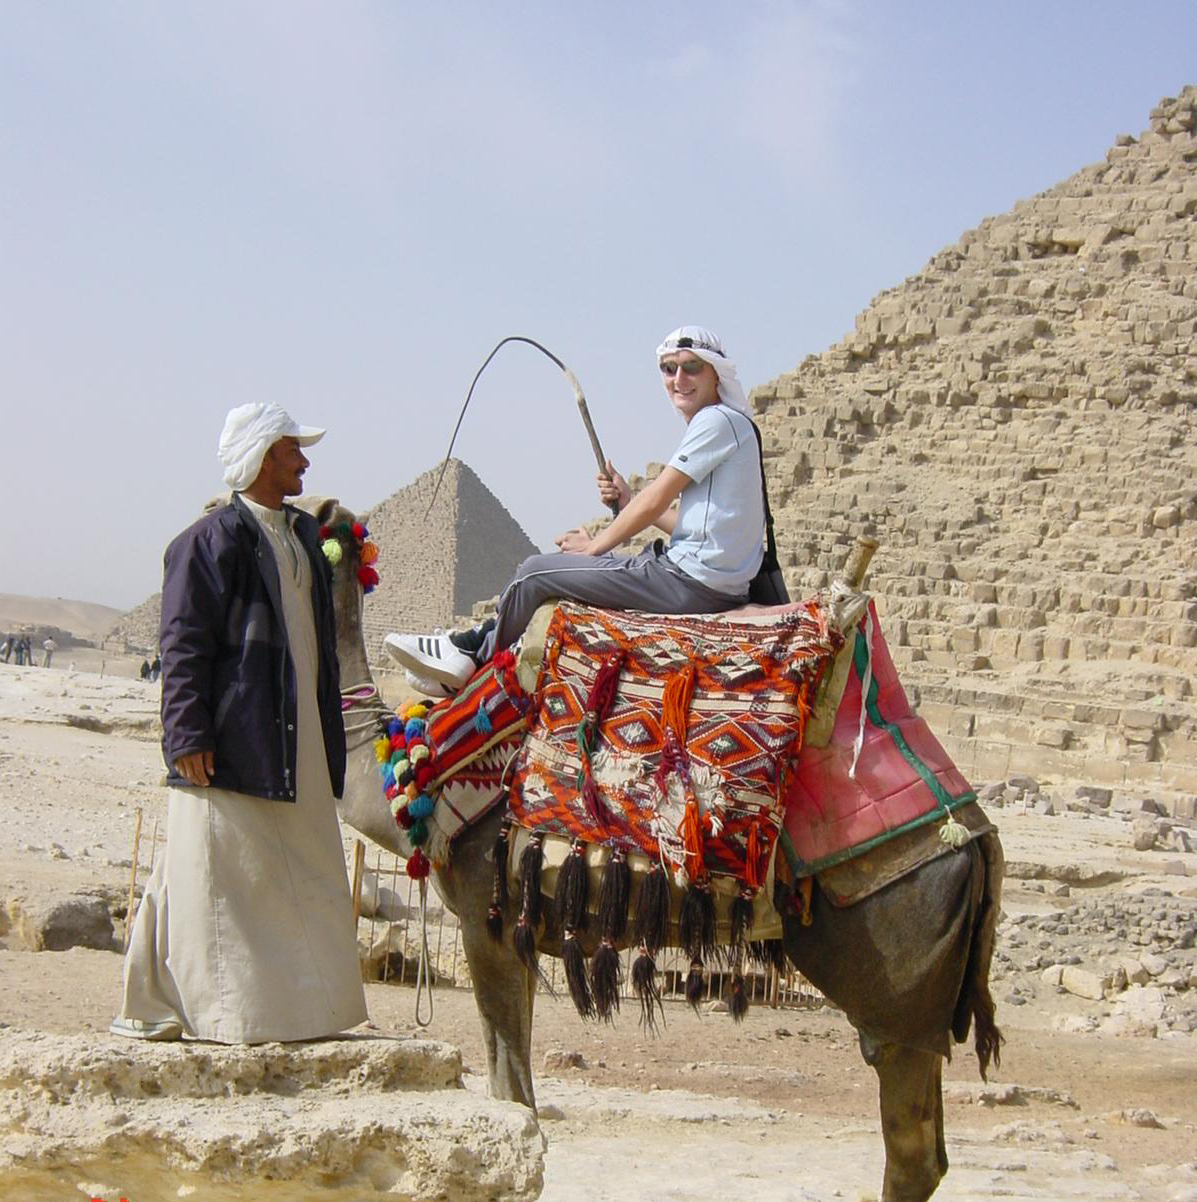 Camel riding at the Egyptian Pyramids